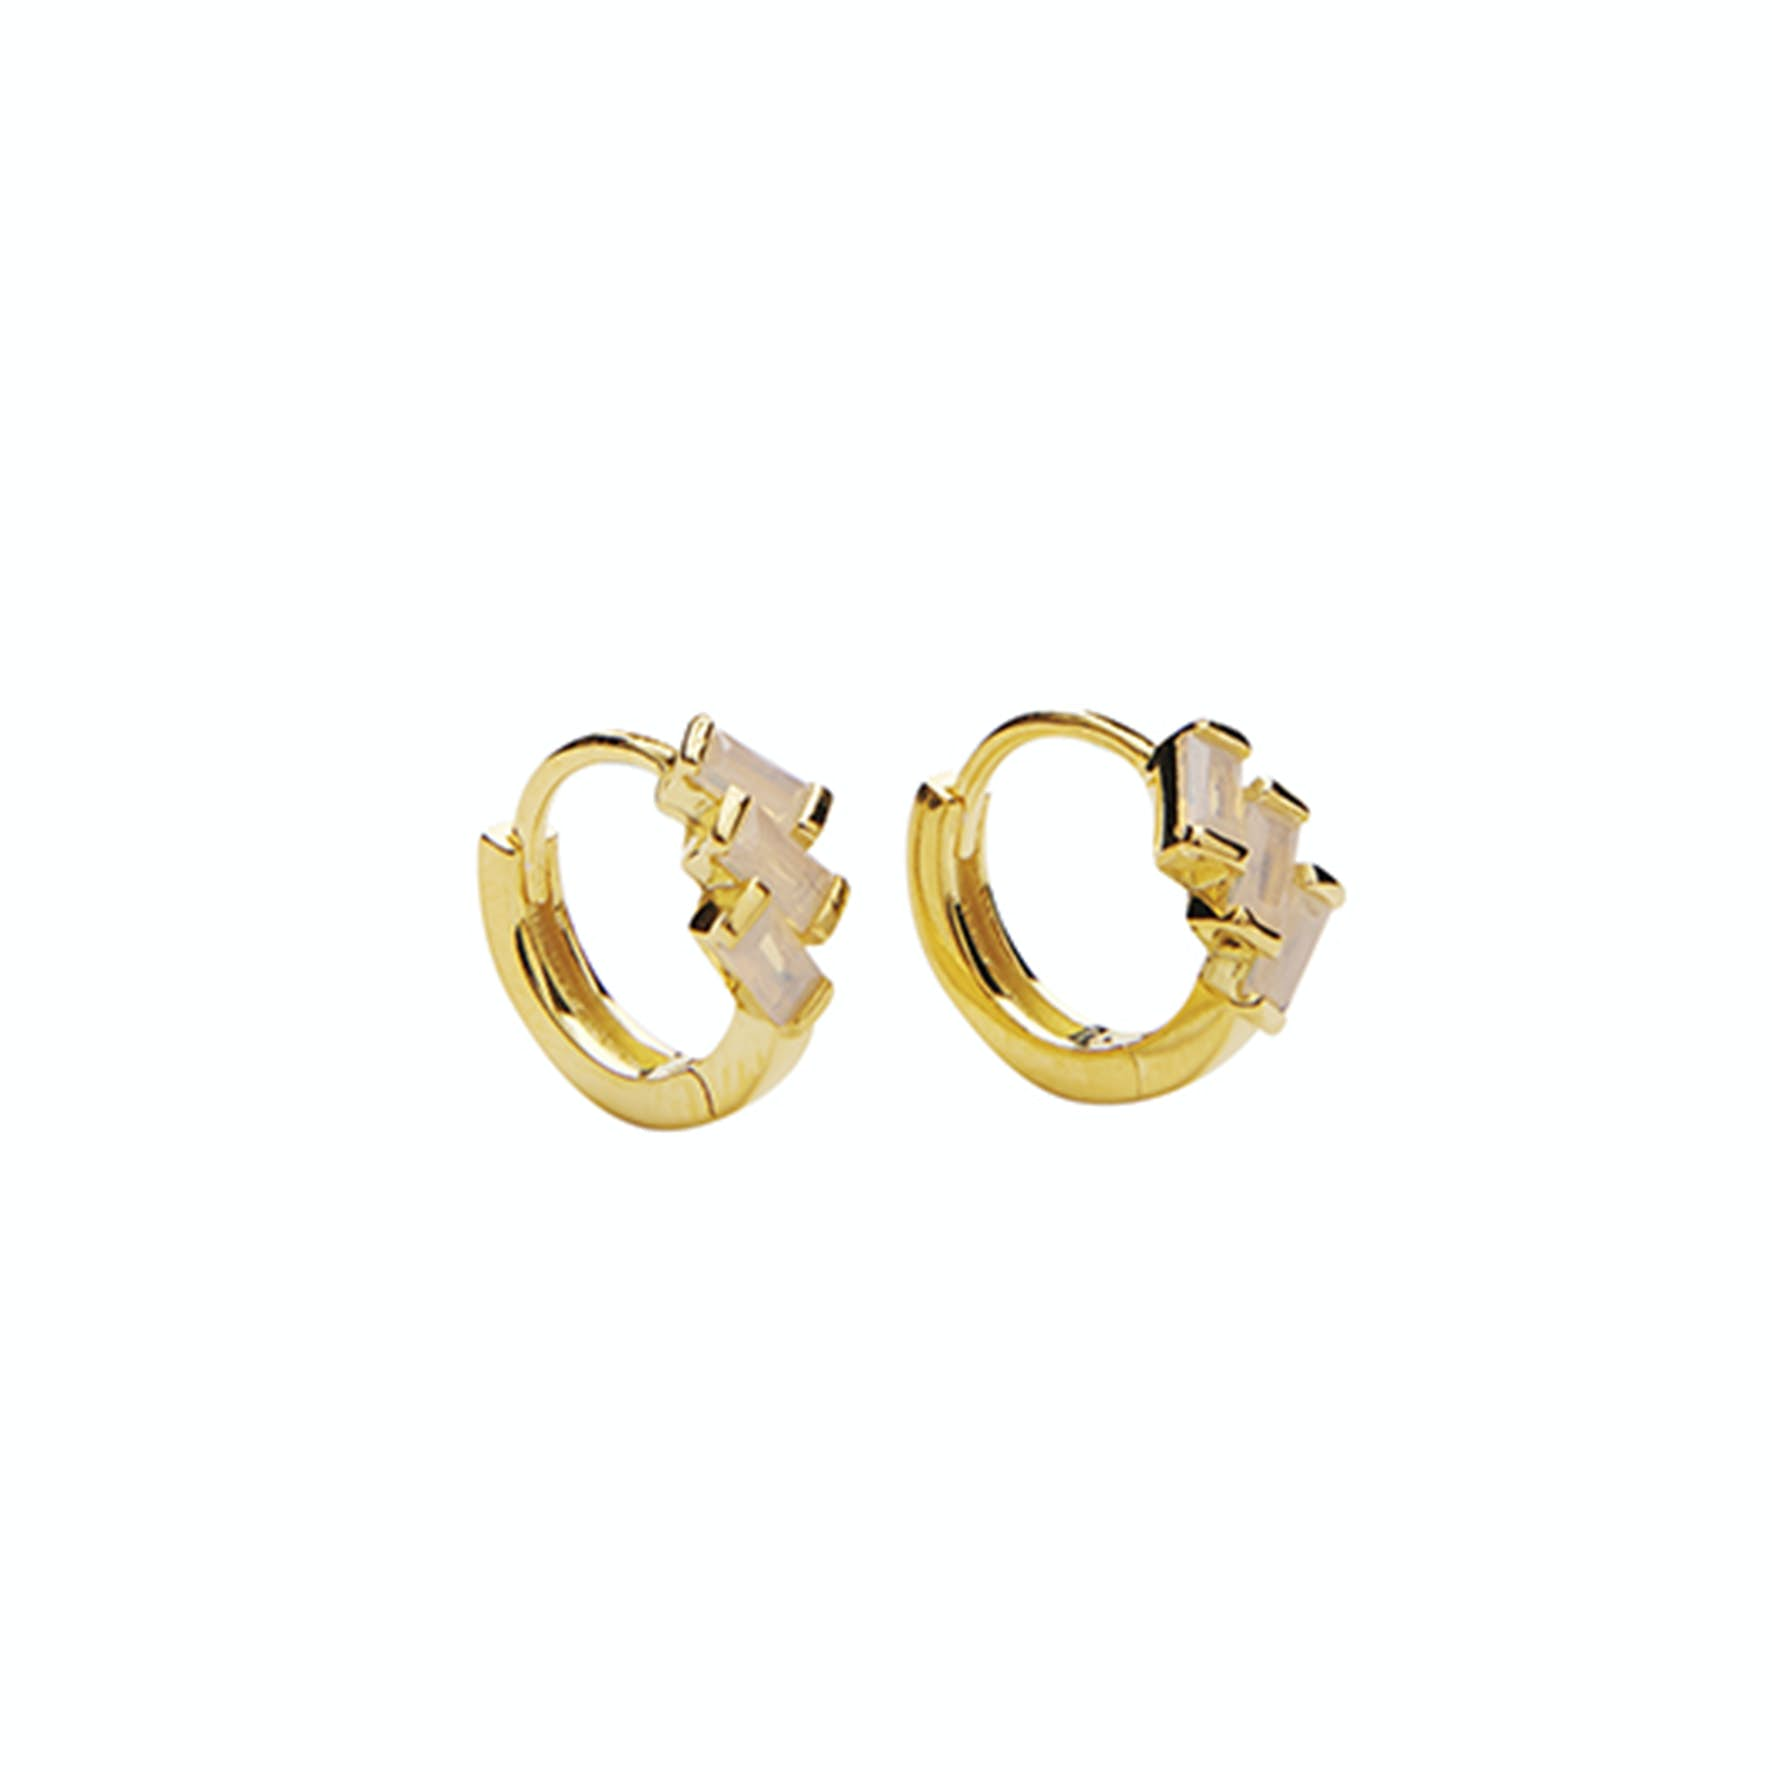 Mirach Crystal Powder Hoops from Pico in Goldplated-Silver Sterling 925